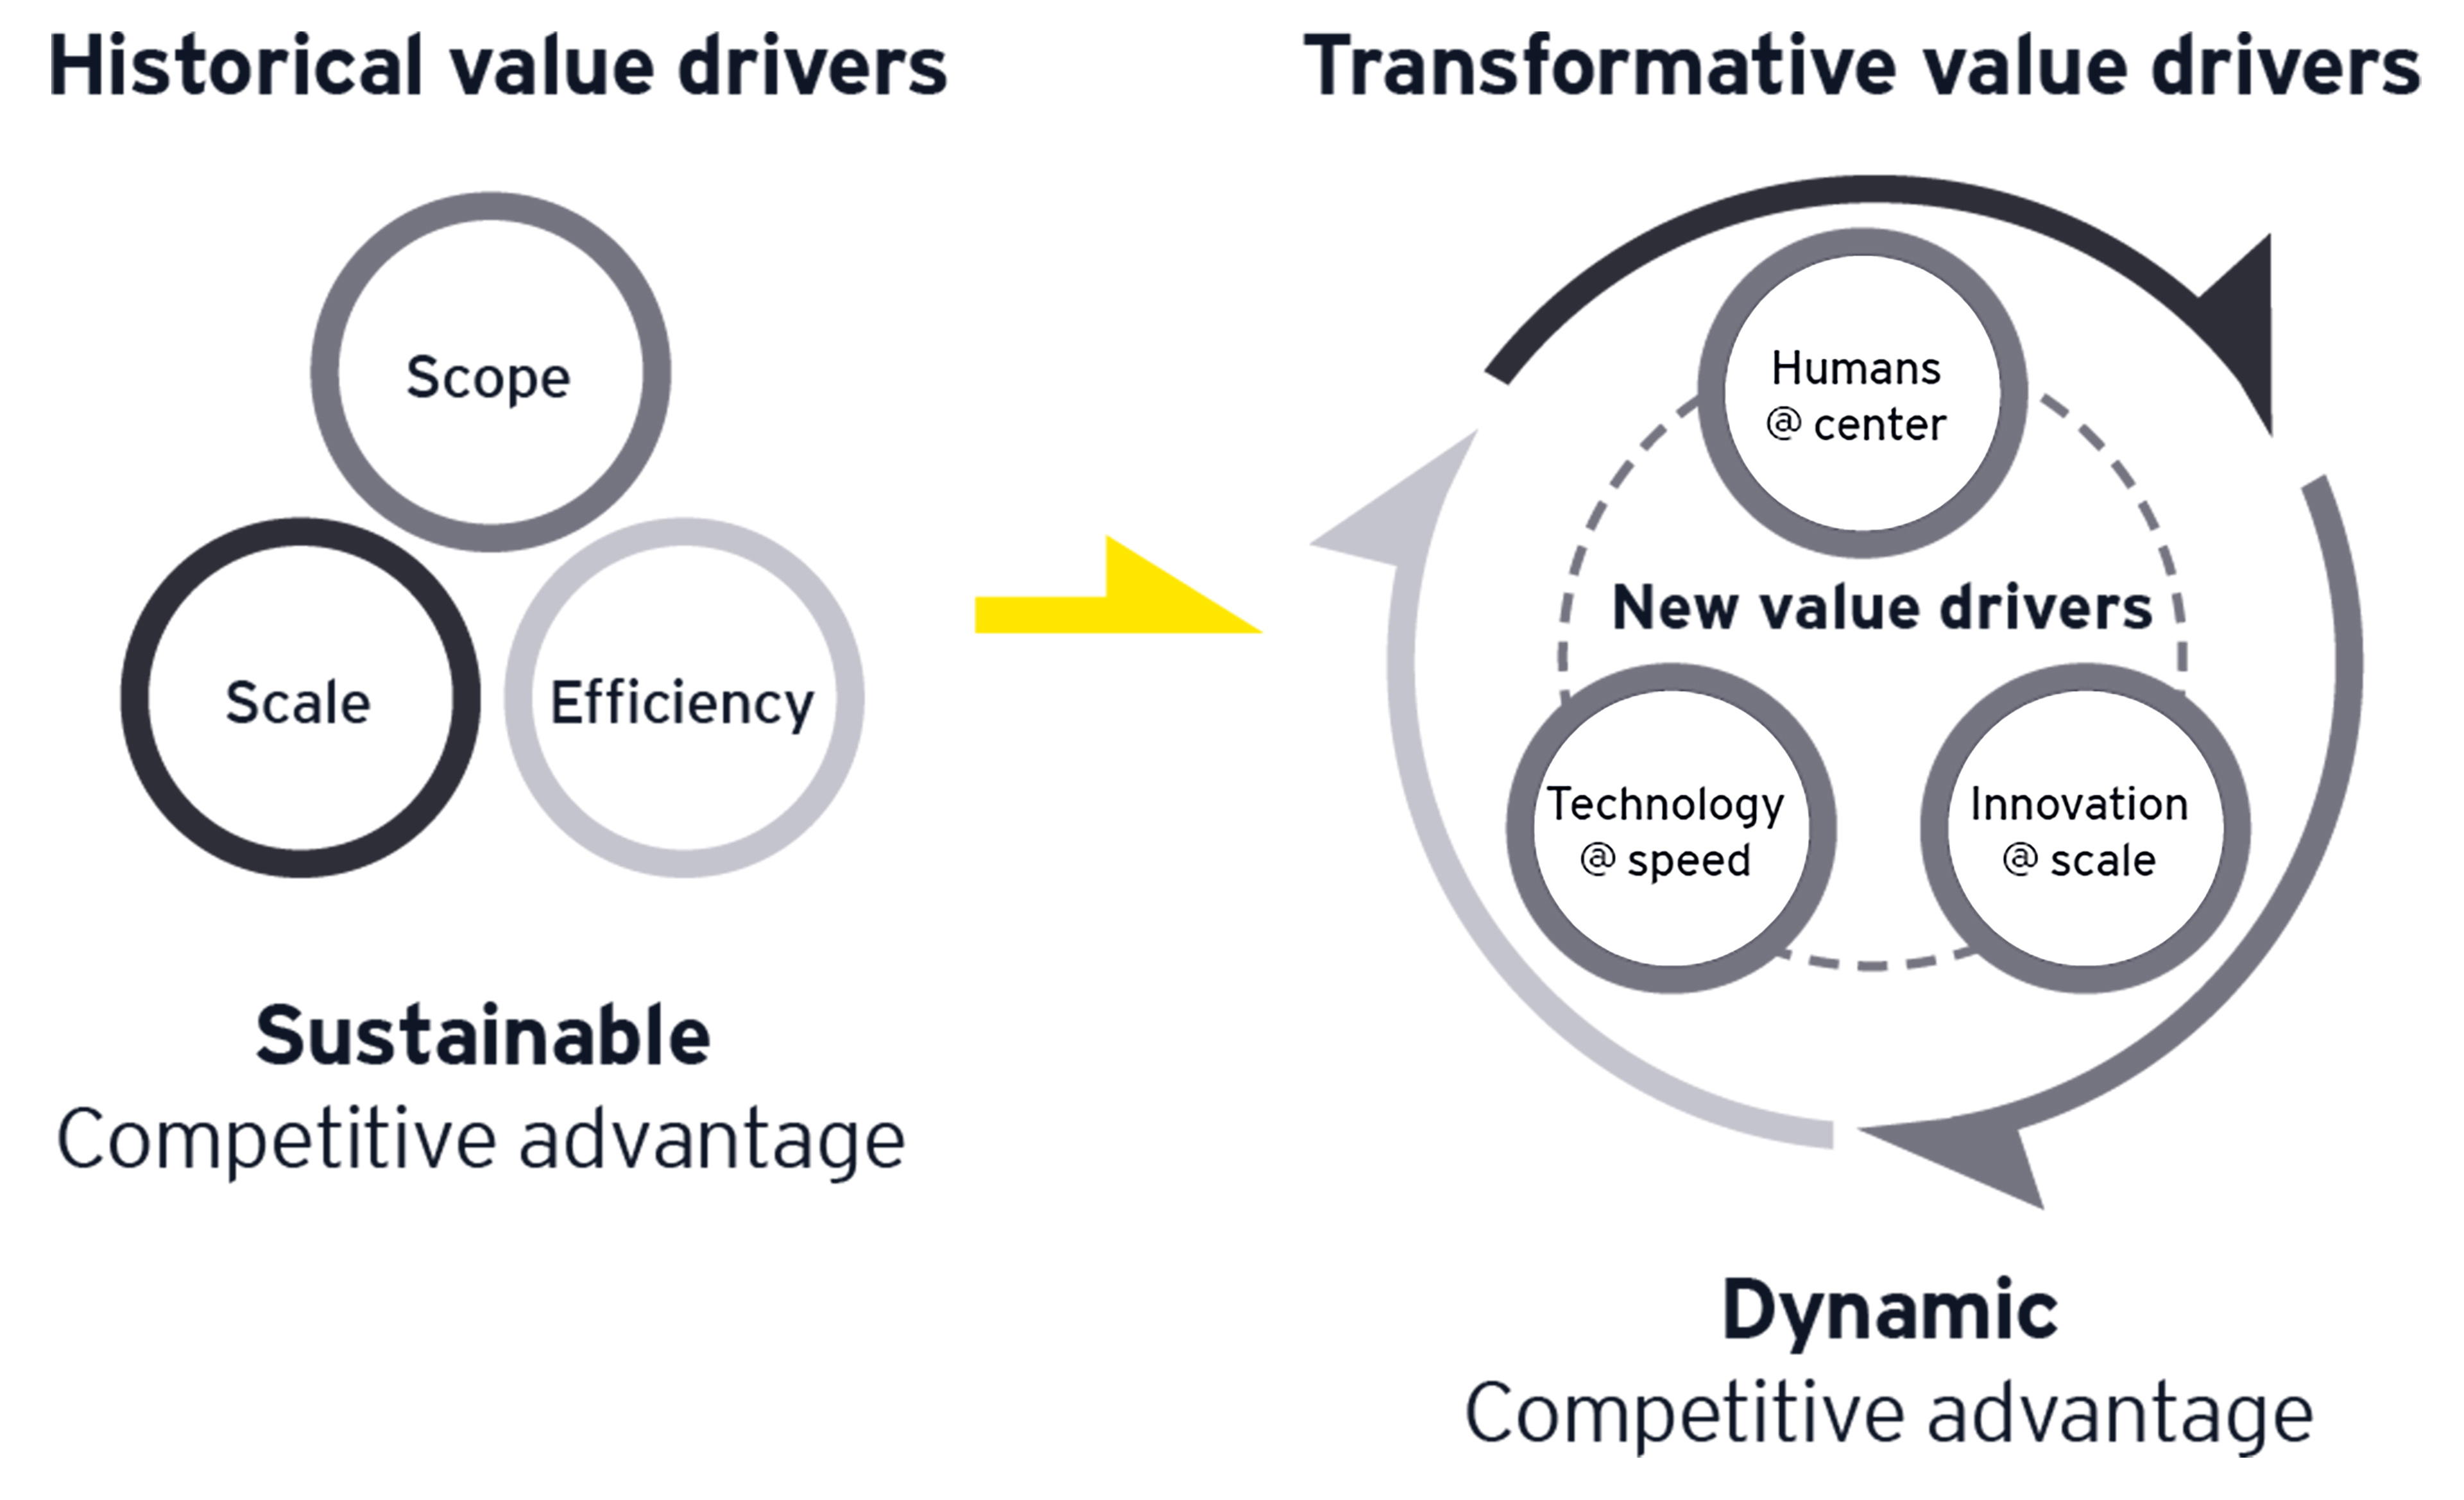 Historical value drivers / Transformative value drivers